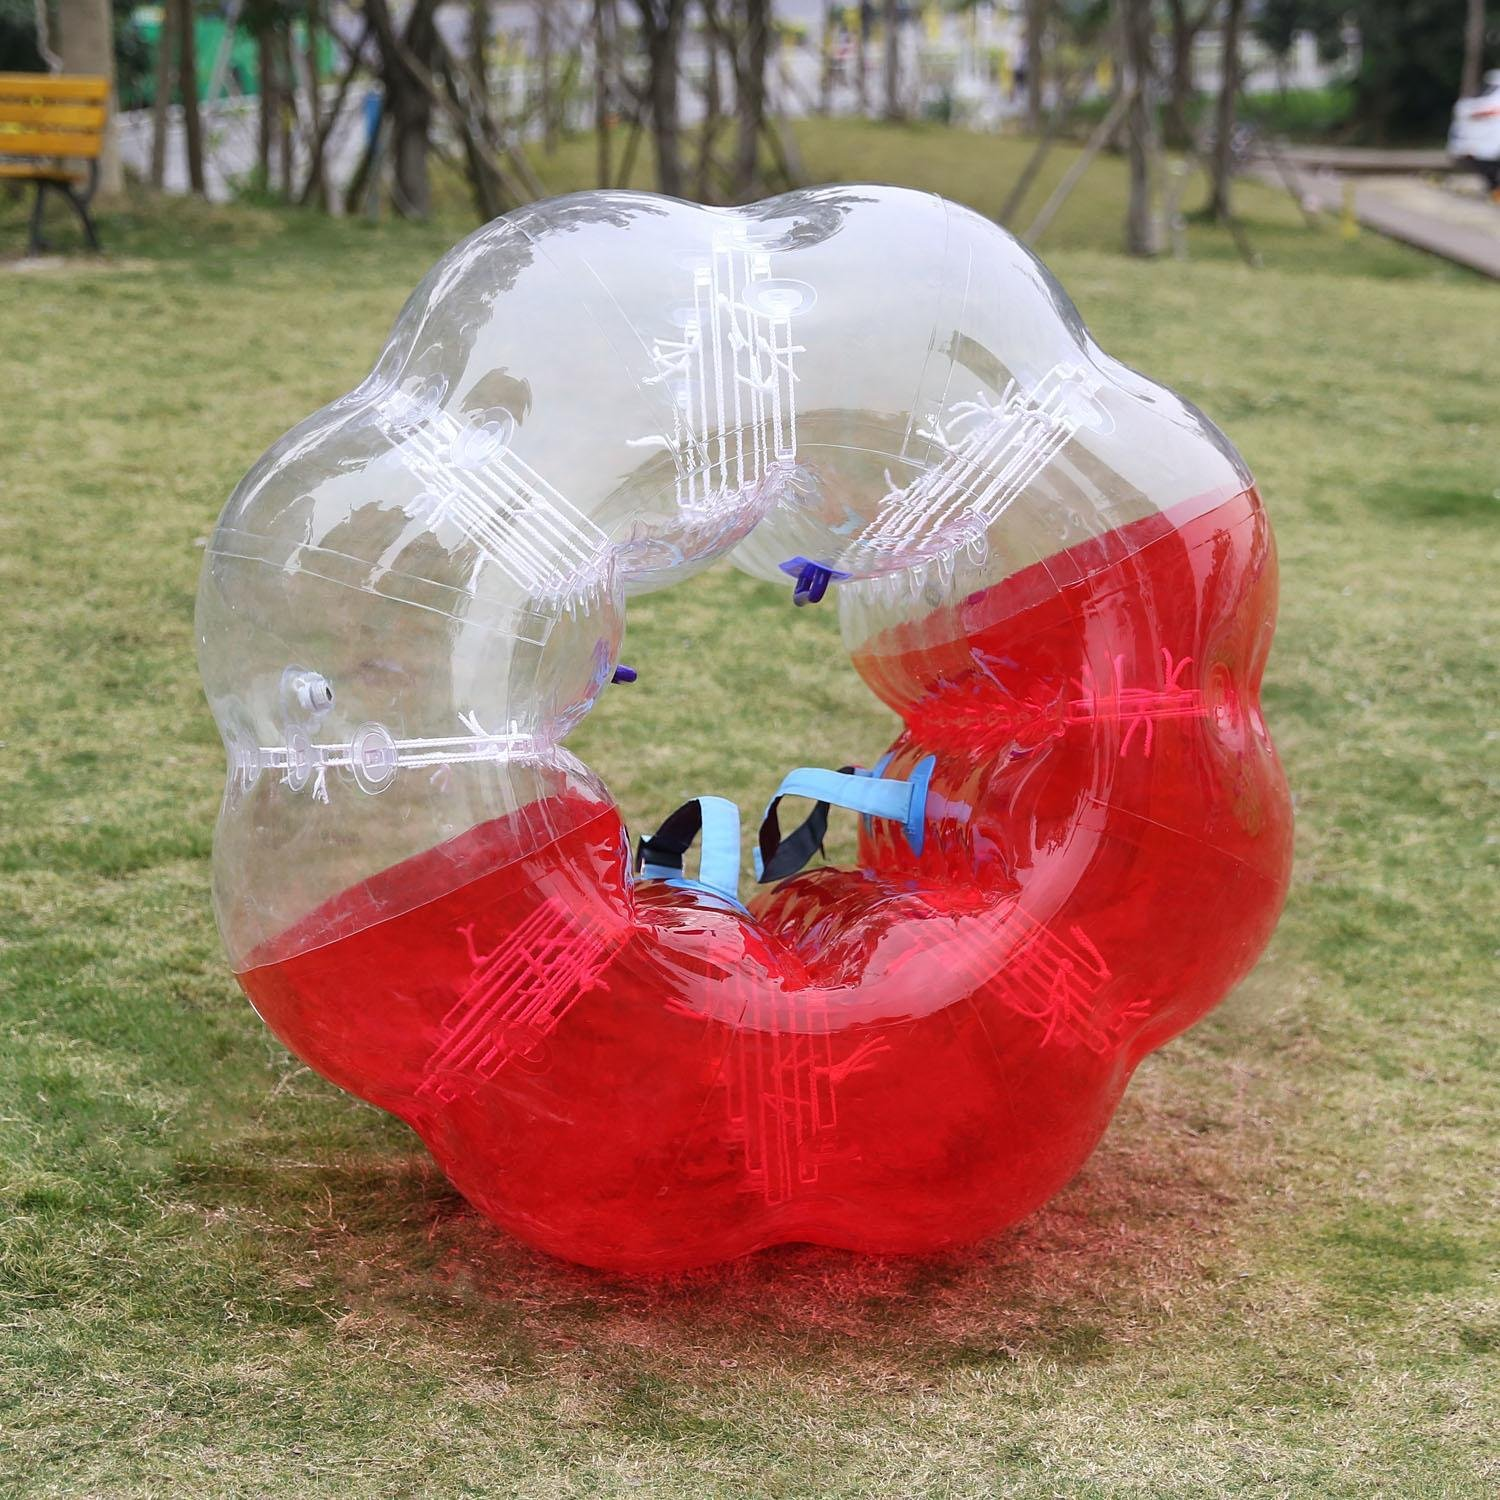 Mewalker Giant Inflatable Bumper Ball 0.8MM TPU Bubble Soccer Ball Zorb Ball Human Hamster Ball With 2 Handles 2 Adjustable Shoulder for Children Kids Adults Playground Outdoor (1.2M-1.5M,US STOCK) by Mewalker (Image #5)